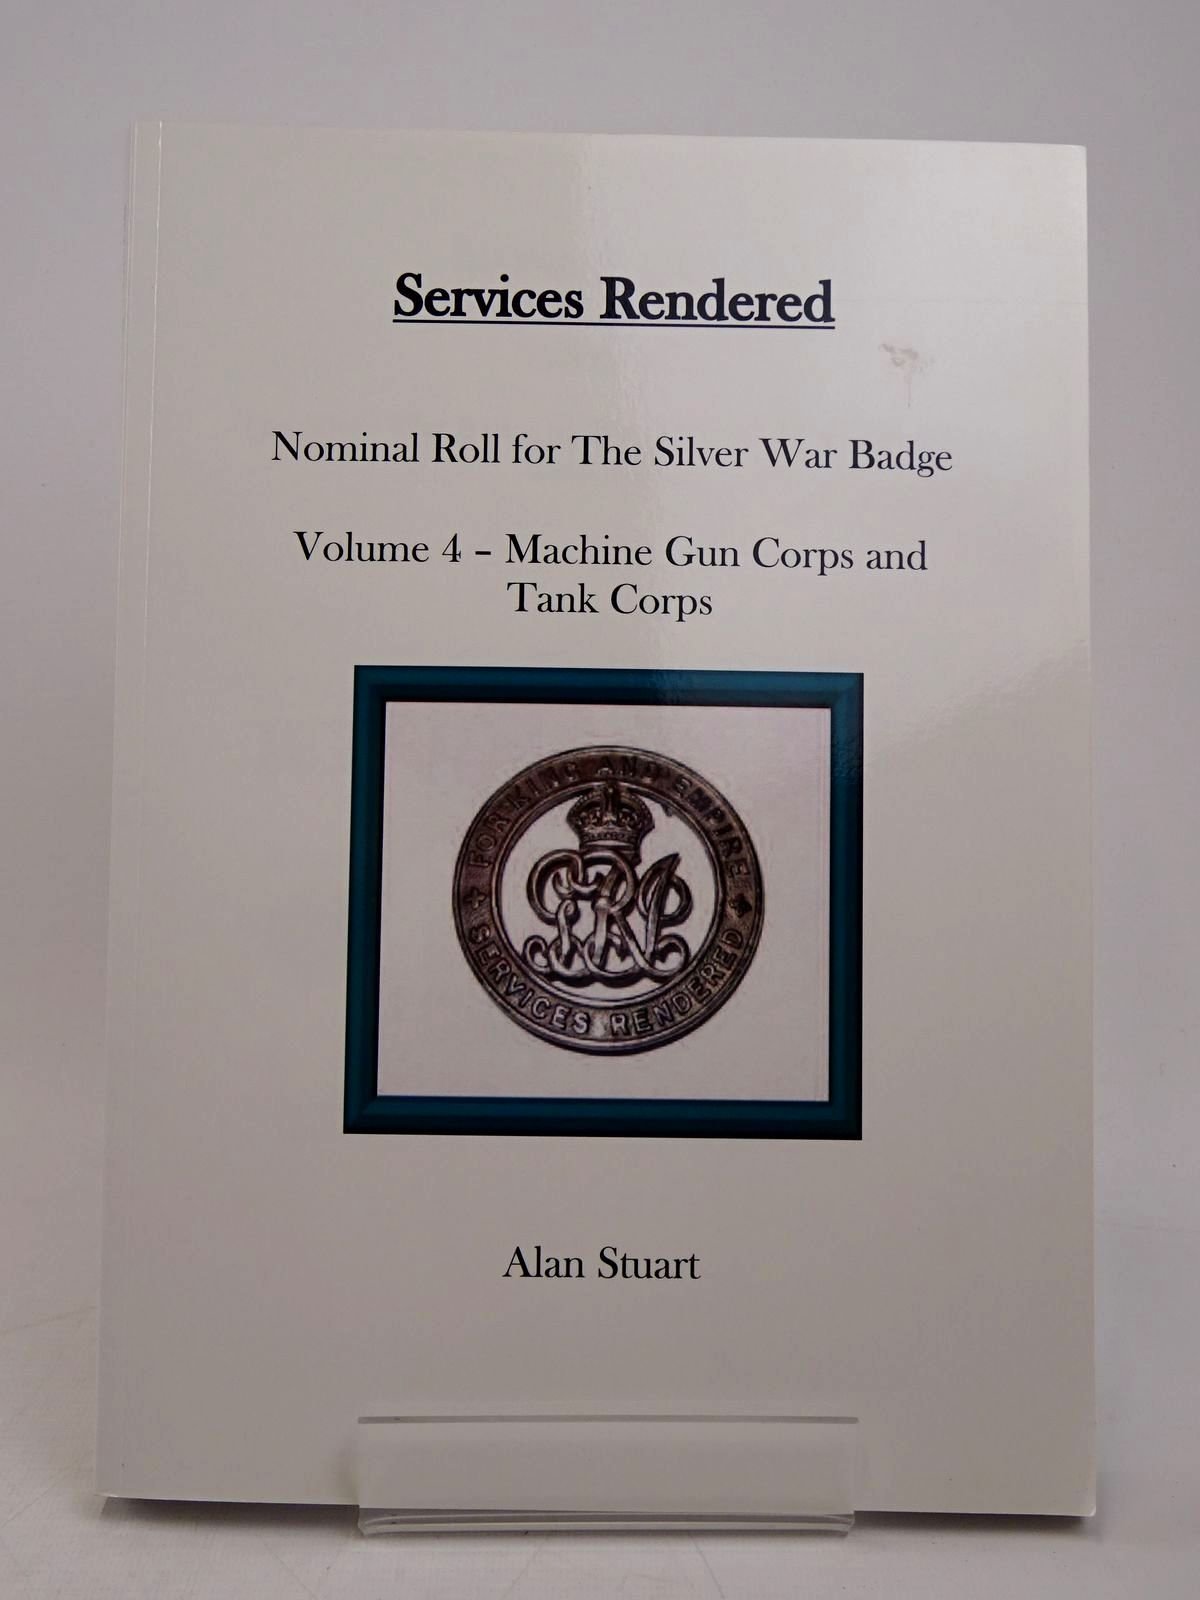 Photo of SERVICES RENDERED VOLUME FOUR: THE SILVER WAR BADGE TO THE MACHINE GUN CORPS AND TANK CORPS written by Stuart, Alan published by Token Publishing Limited (STOCK CODE: 1817981)  for sale by Stella & Rose's Books